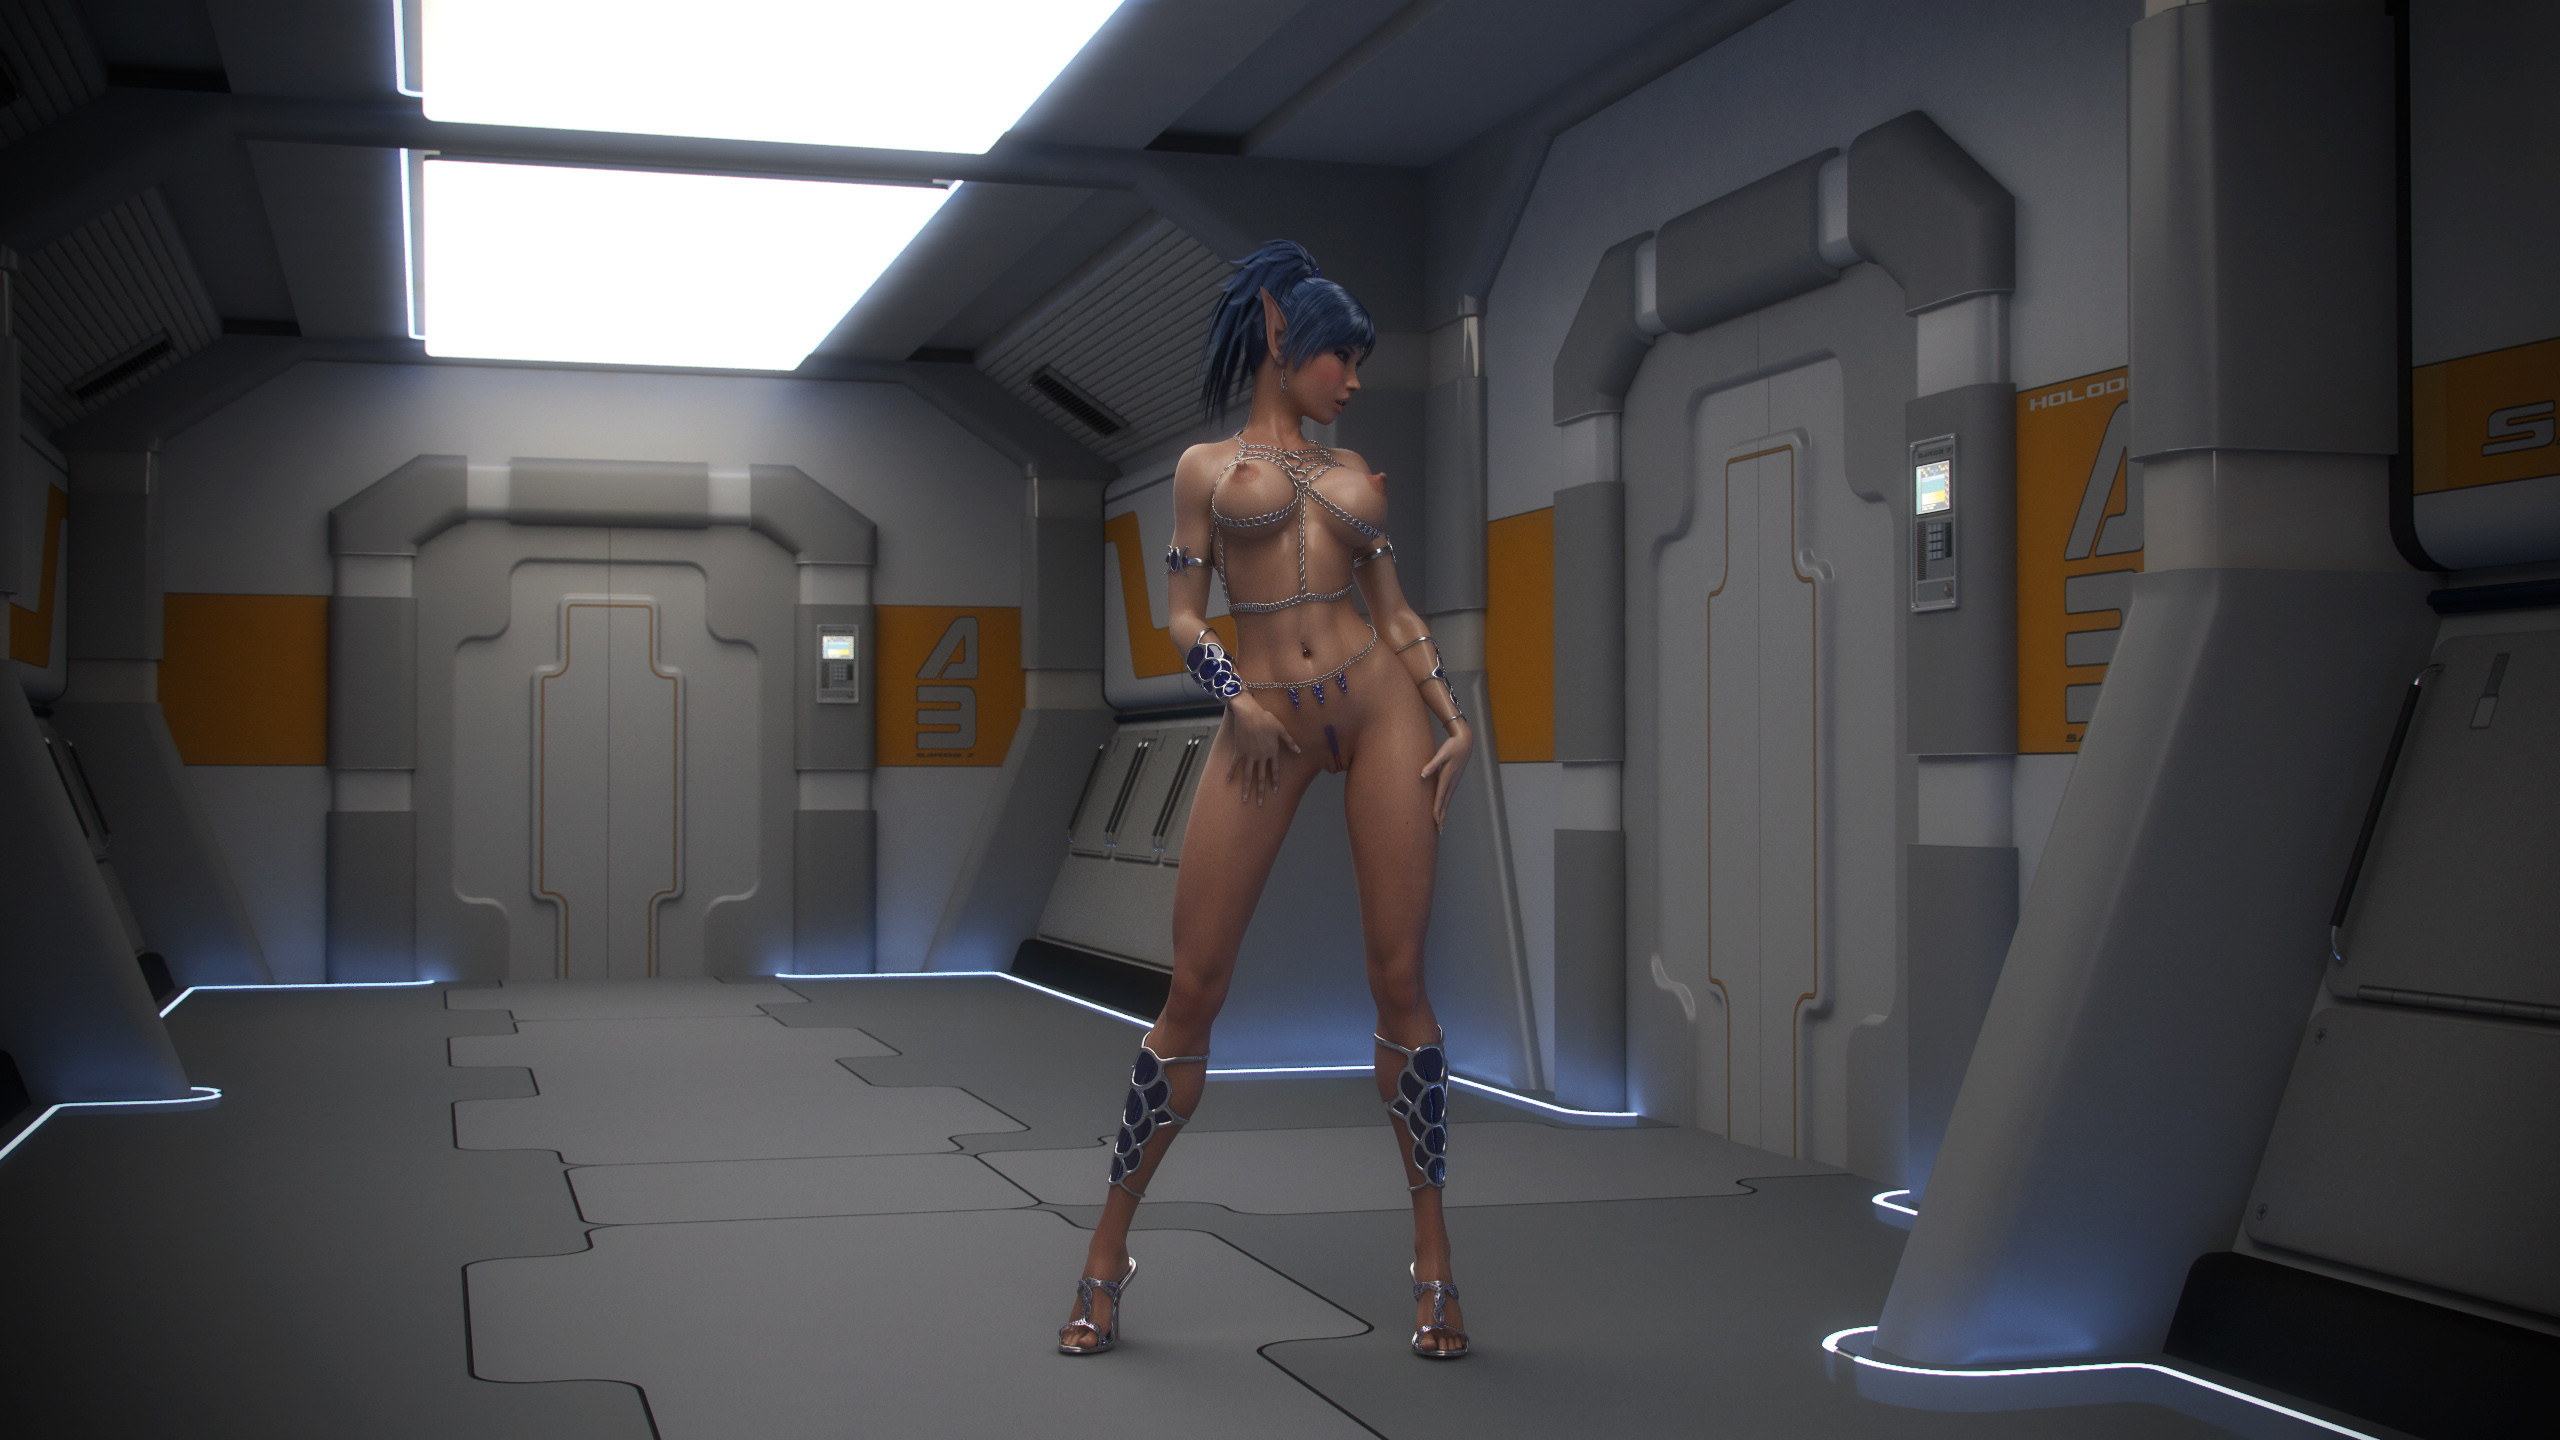 Hot porn star babes performing wild sci fi porn and alien sex in images